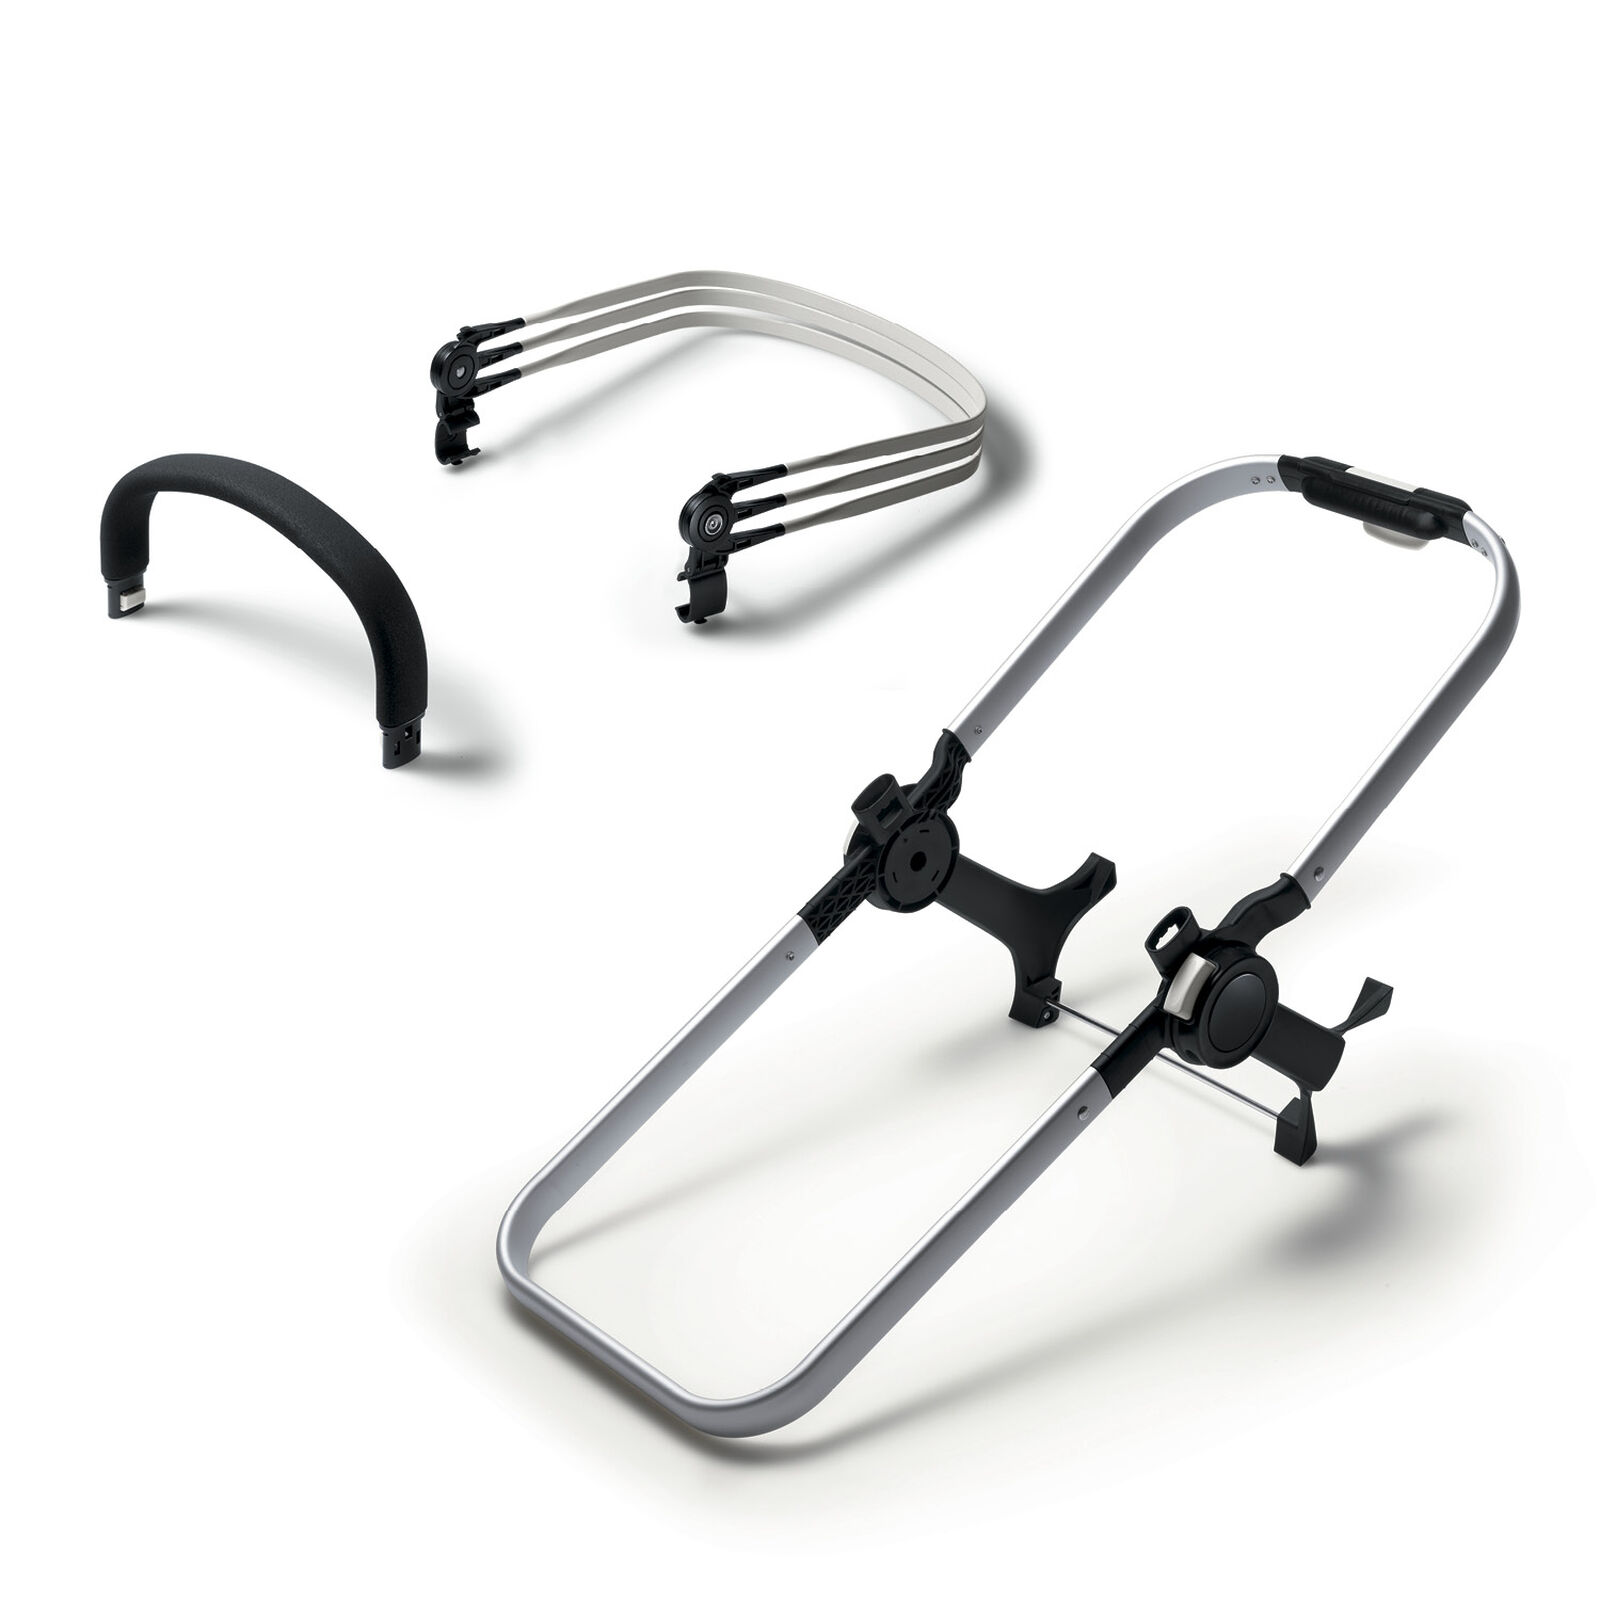 Bugaboo Donkey2 duo extension set base+ ALU